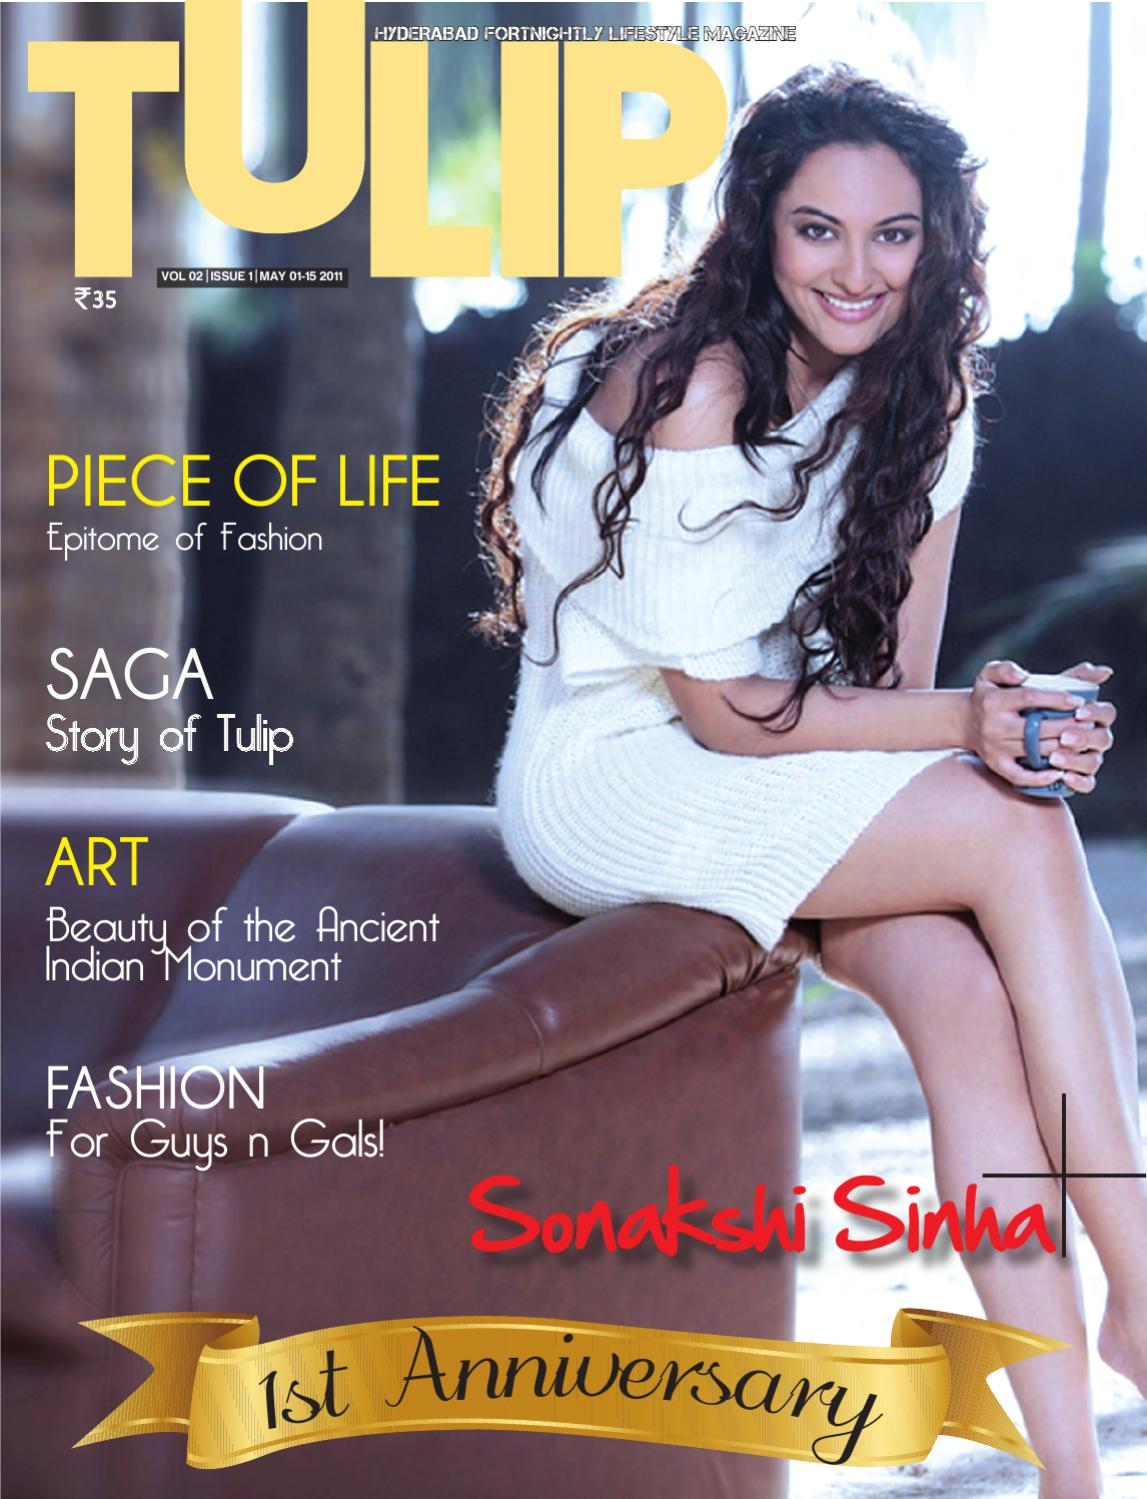 Tulip Anniversary Issue By Magazine Issuu Posted Srihari Rao On Thursday January 6 2011 5comments